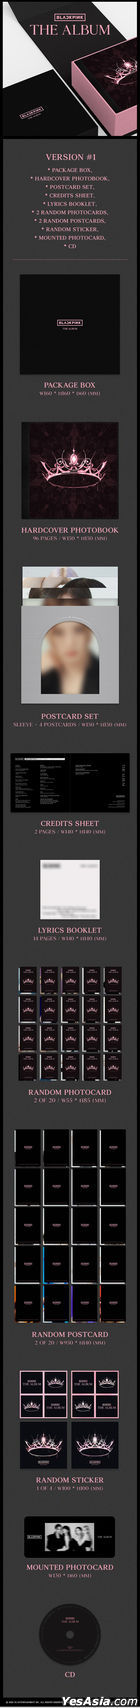 BLACKPINK 1st FULL ALBUM [THE ALBUM] (Version 2)